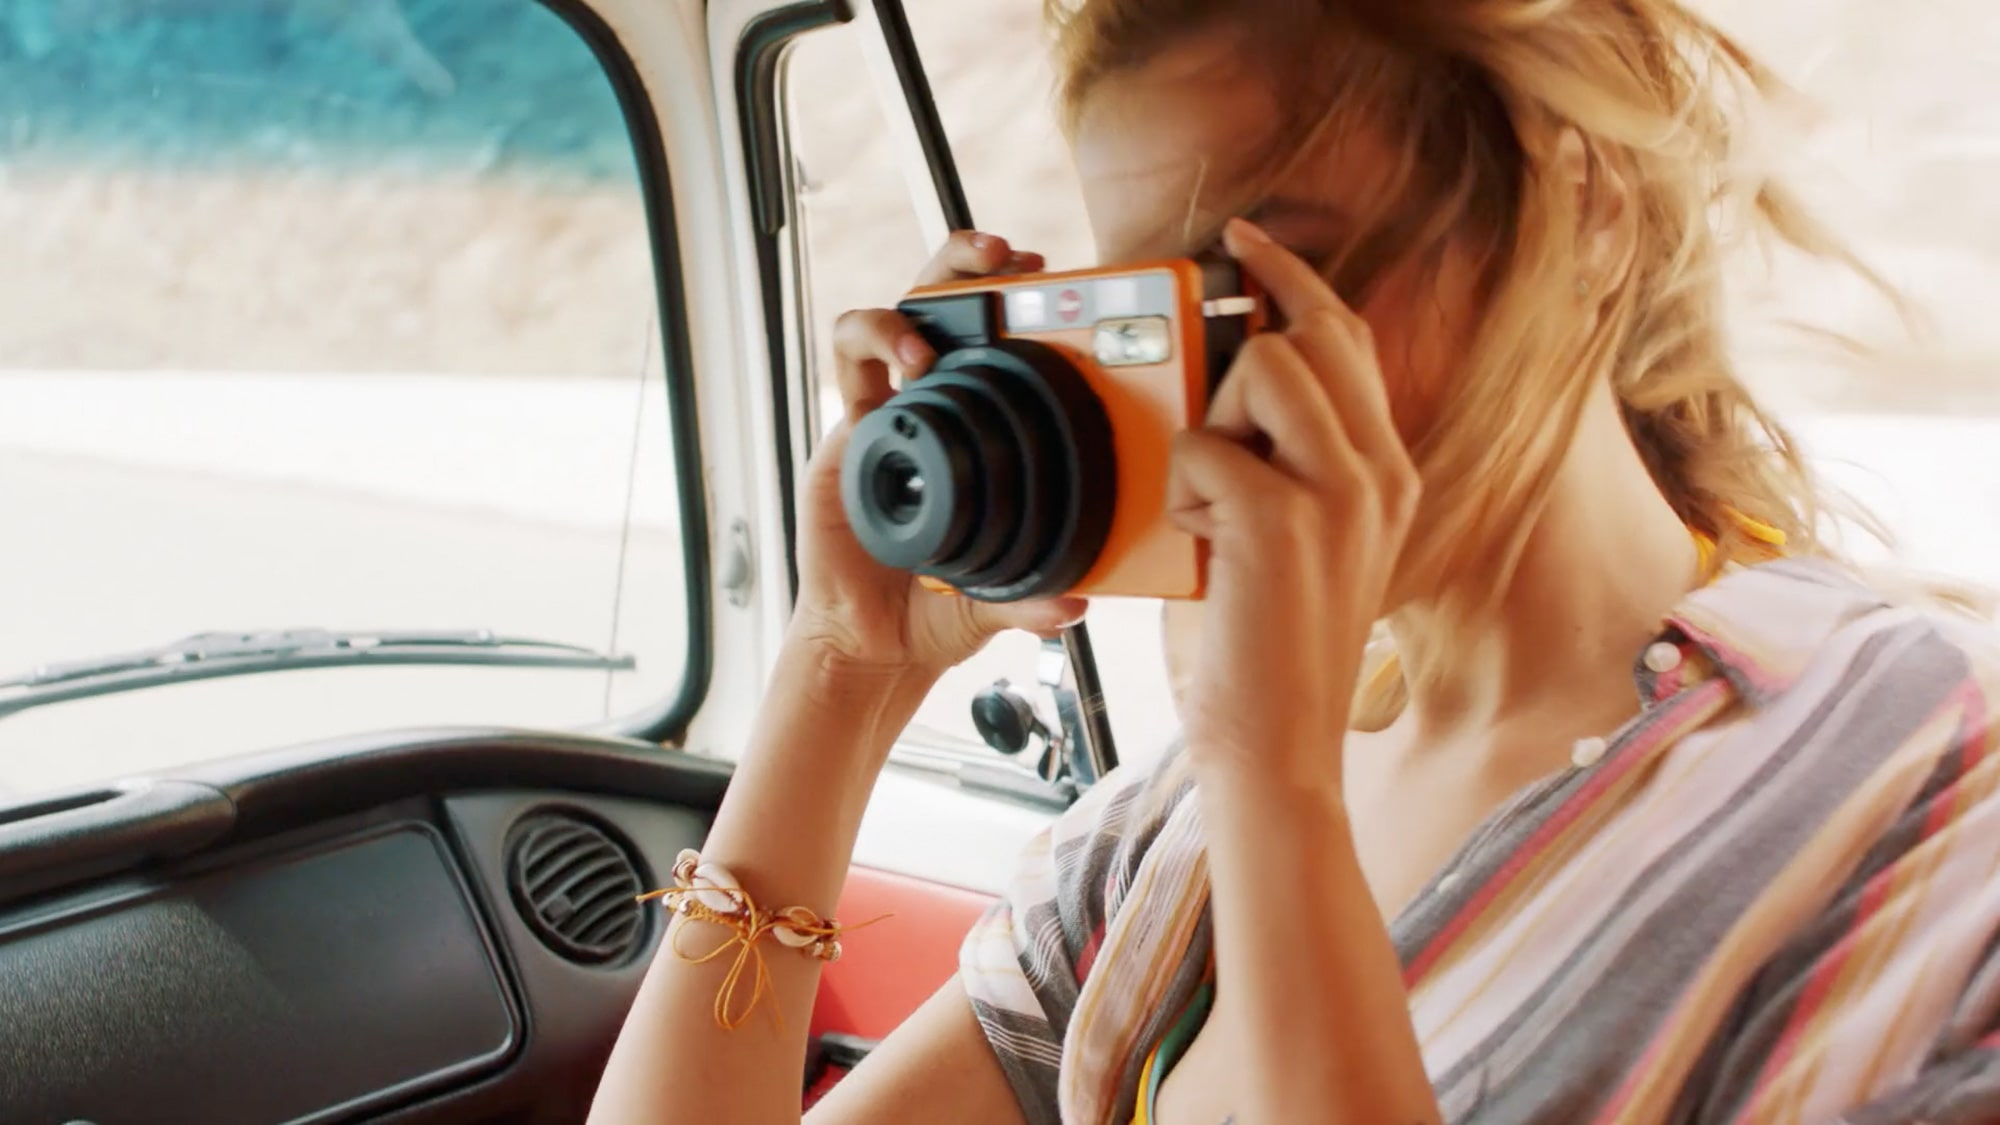 Camera on your trip